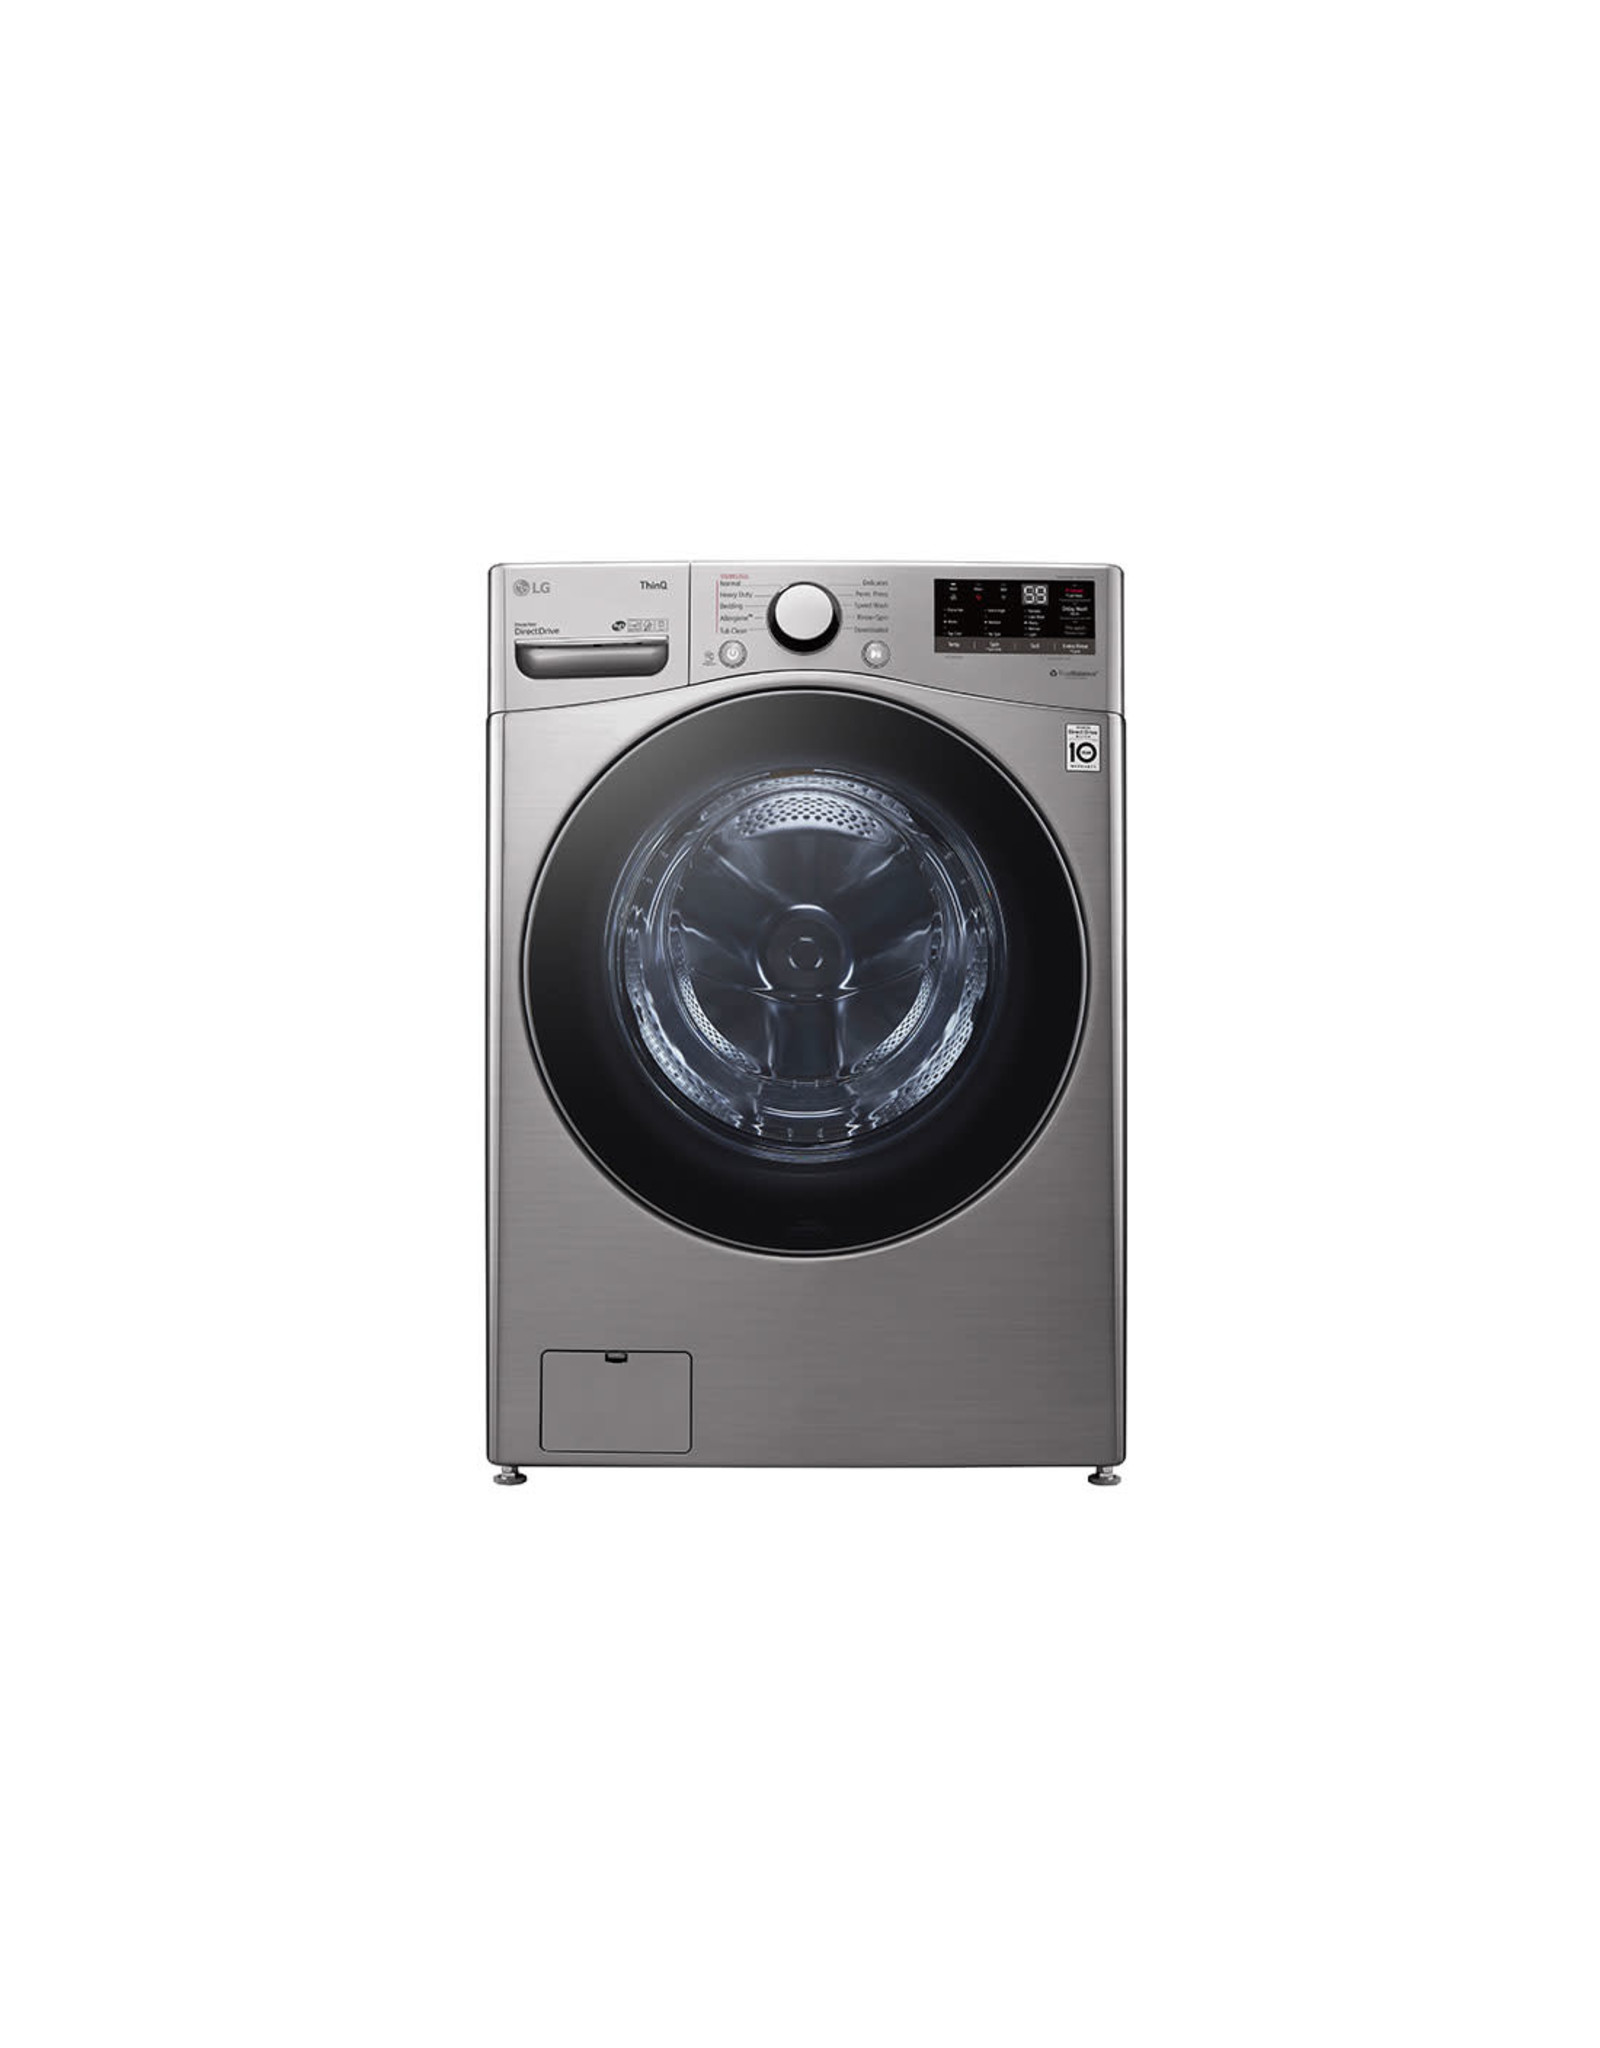 LG Electronics WM3600HVA 27 in. 4.5 cu. ft. Ultra Large Capacity Graphite Steel Front Load Washer with Steam and Wi-Fi Connectivity